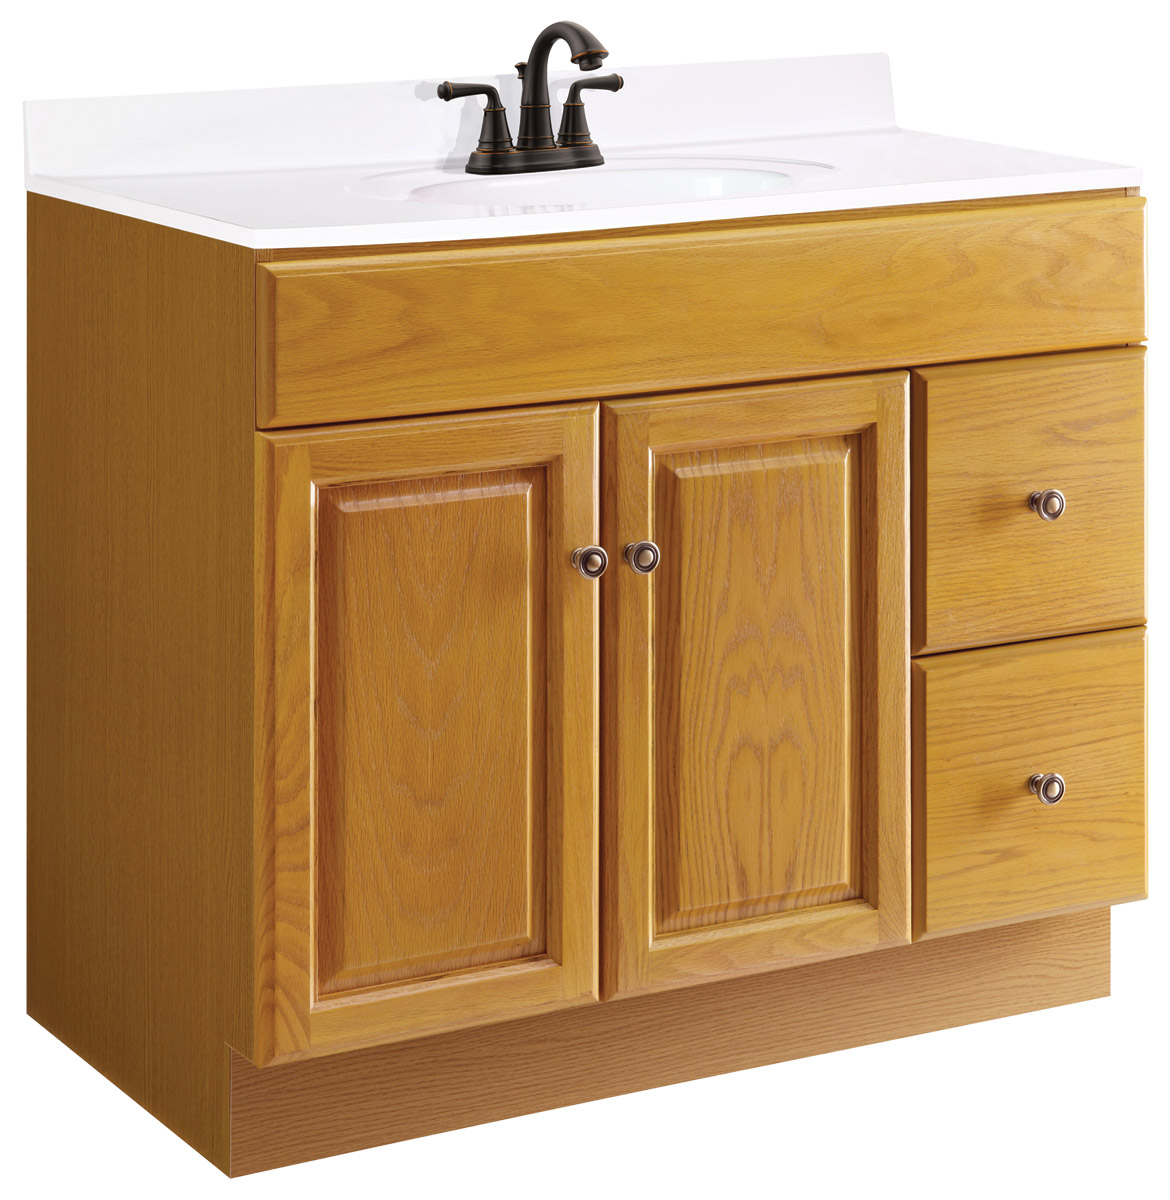 Design House 545186 Claremont Honey Oak Vanity Cabinet with 2-Doors and 2-Drawers 36-Inches by 21-Inches by 31.5-Inches